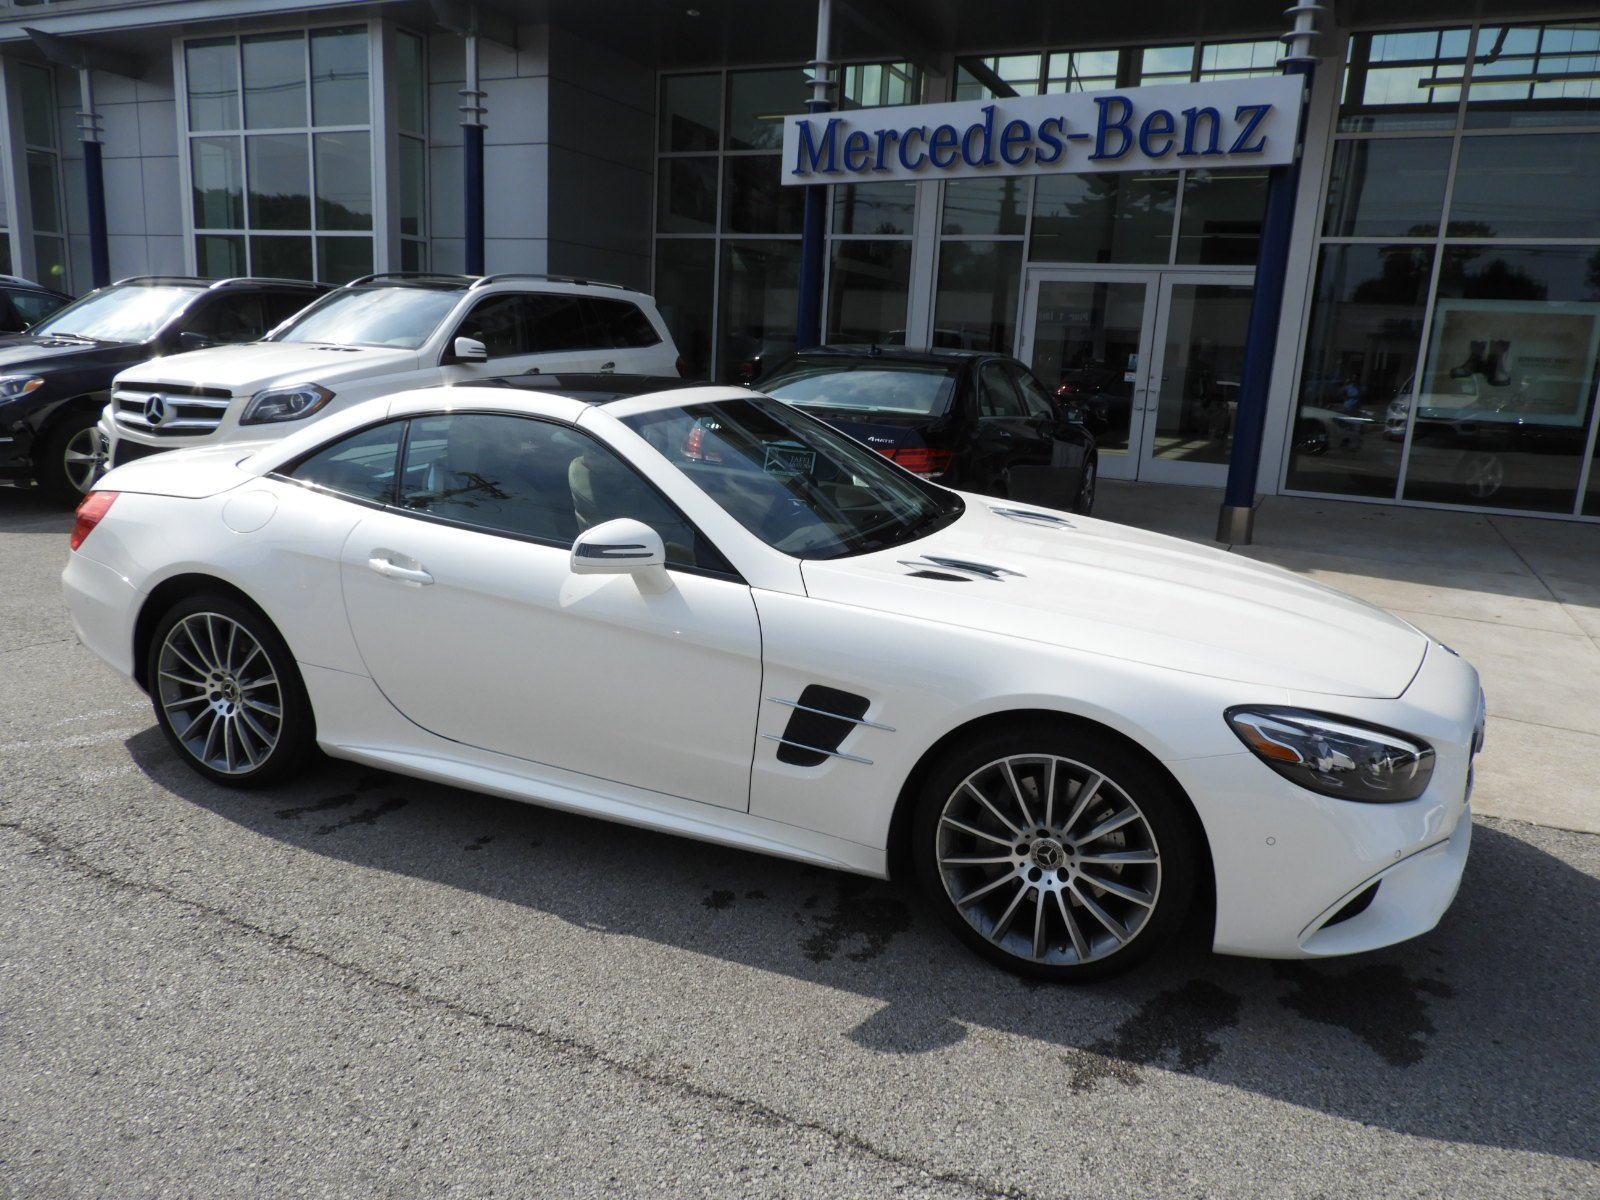 Pre Owned 2018 Mercedes Benz SL SL 550 Roadster Convertible in